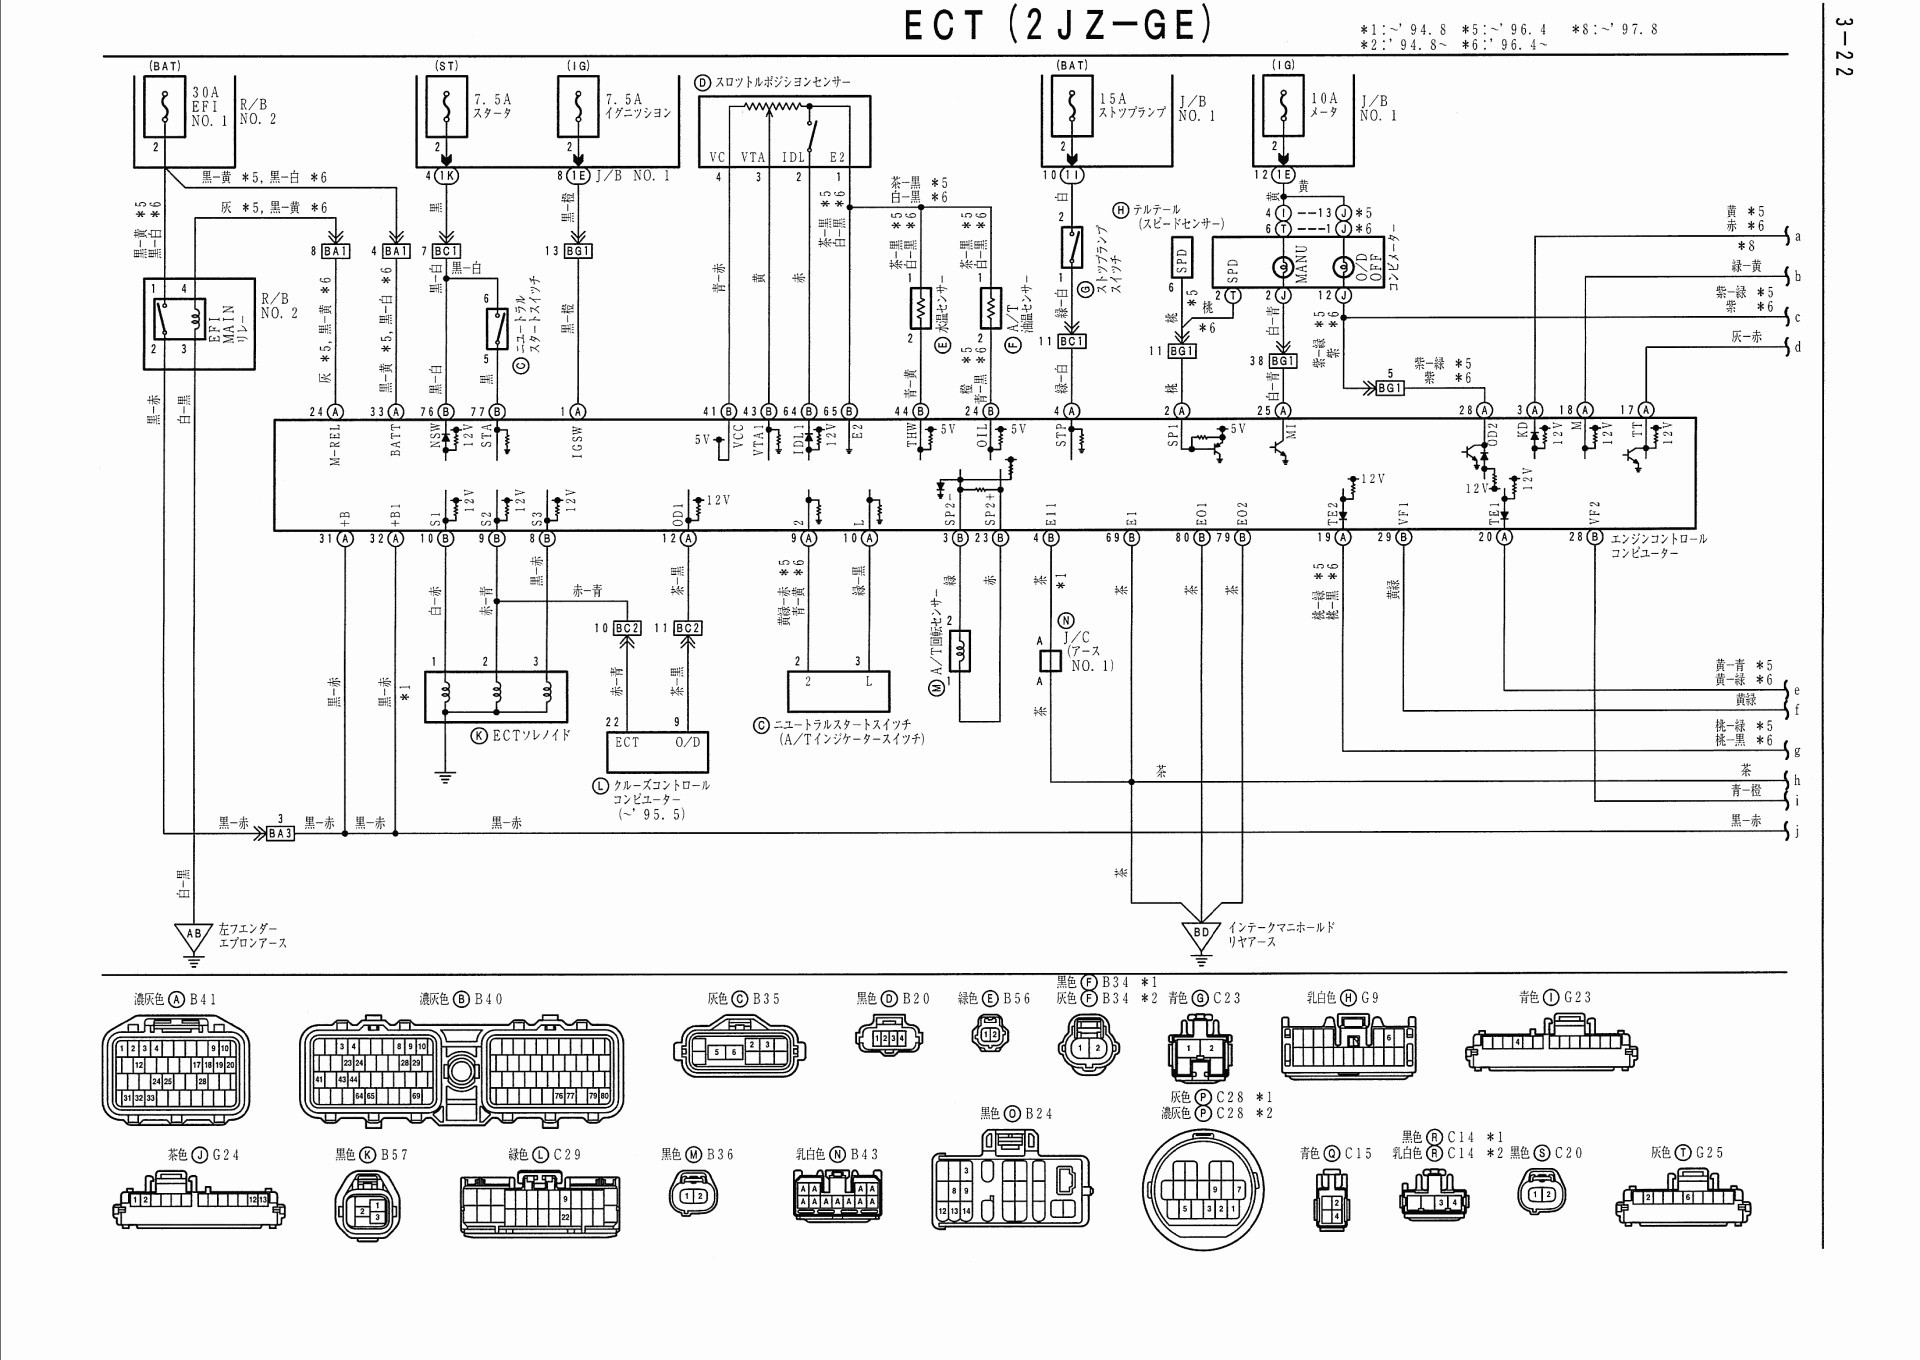 E39 Headlight Wiring Diagram - U 59 Danelectro Wiring Diagram for Wiring  Diagram SchematicsWiring Diagram Schematics